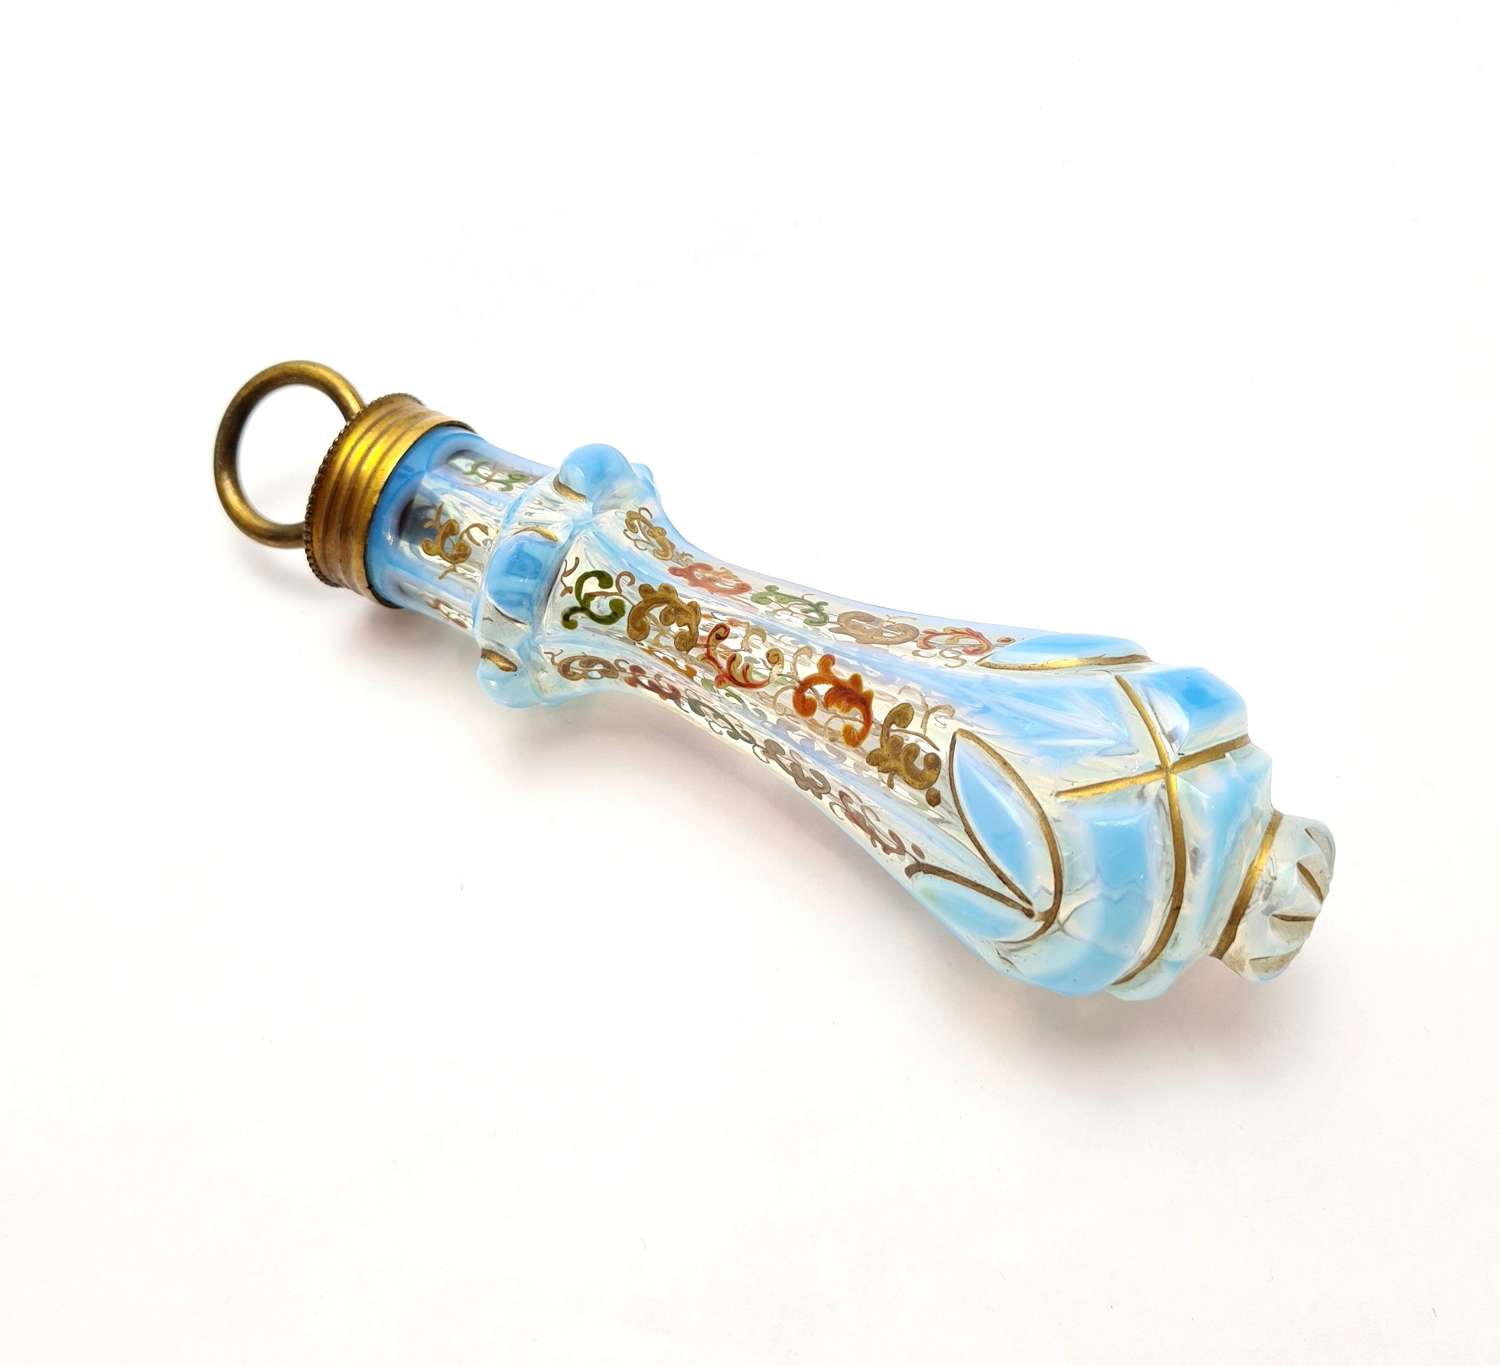 A Gilded Glass Bell Pull